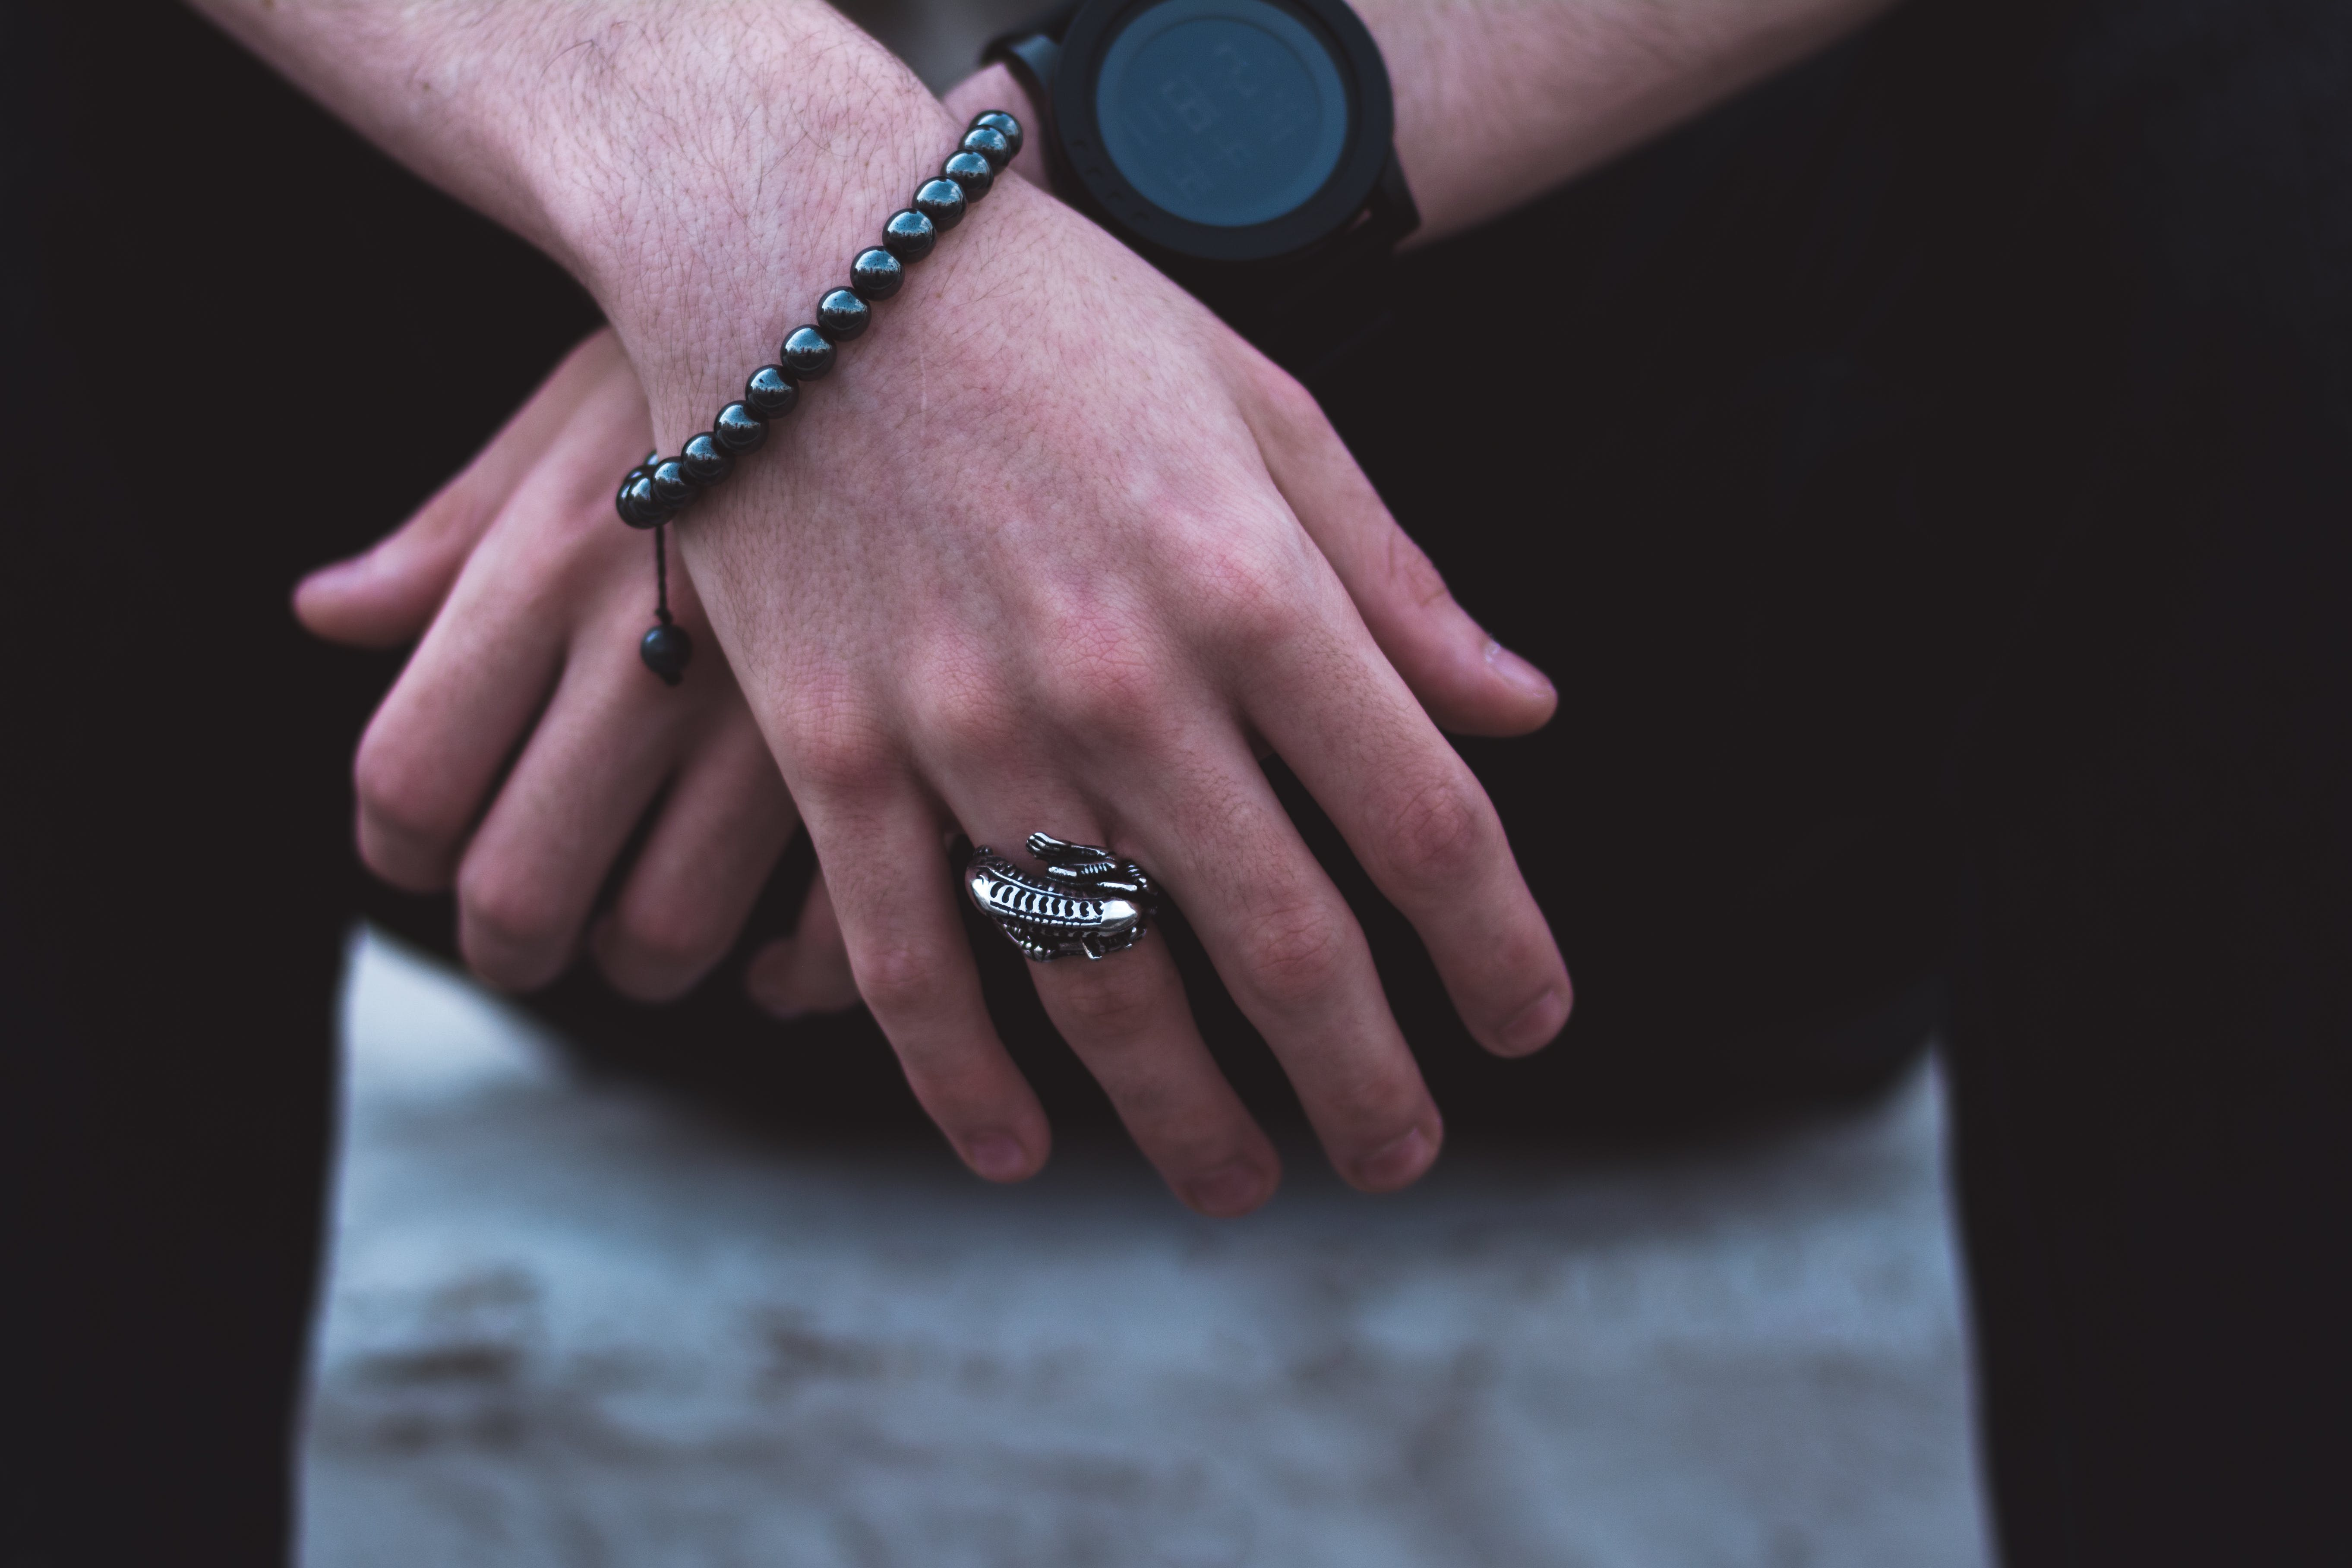 Free stock photo of bracelet, clock, hands, man